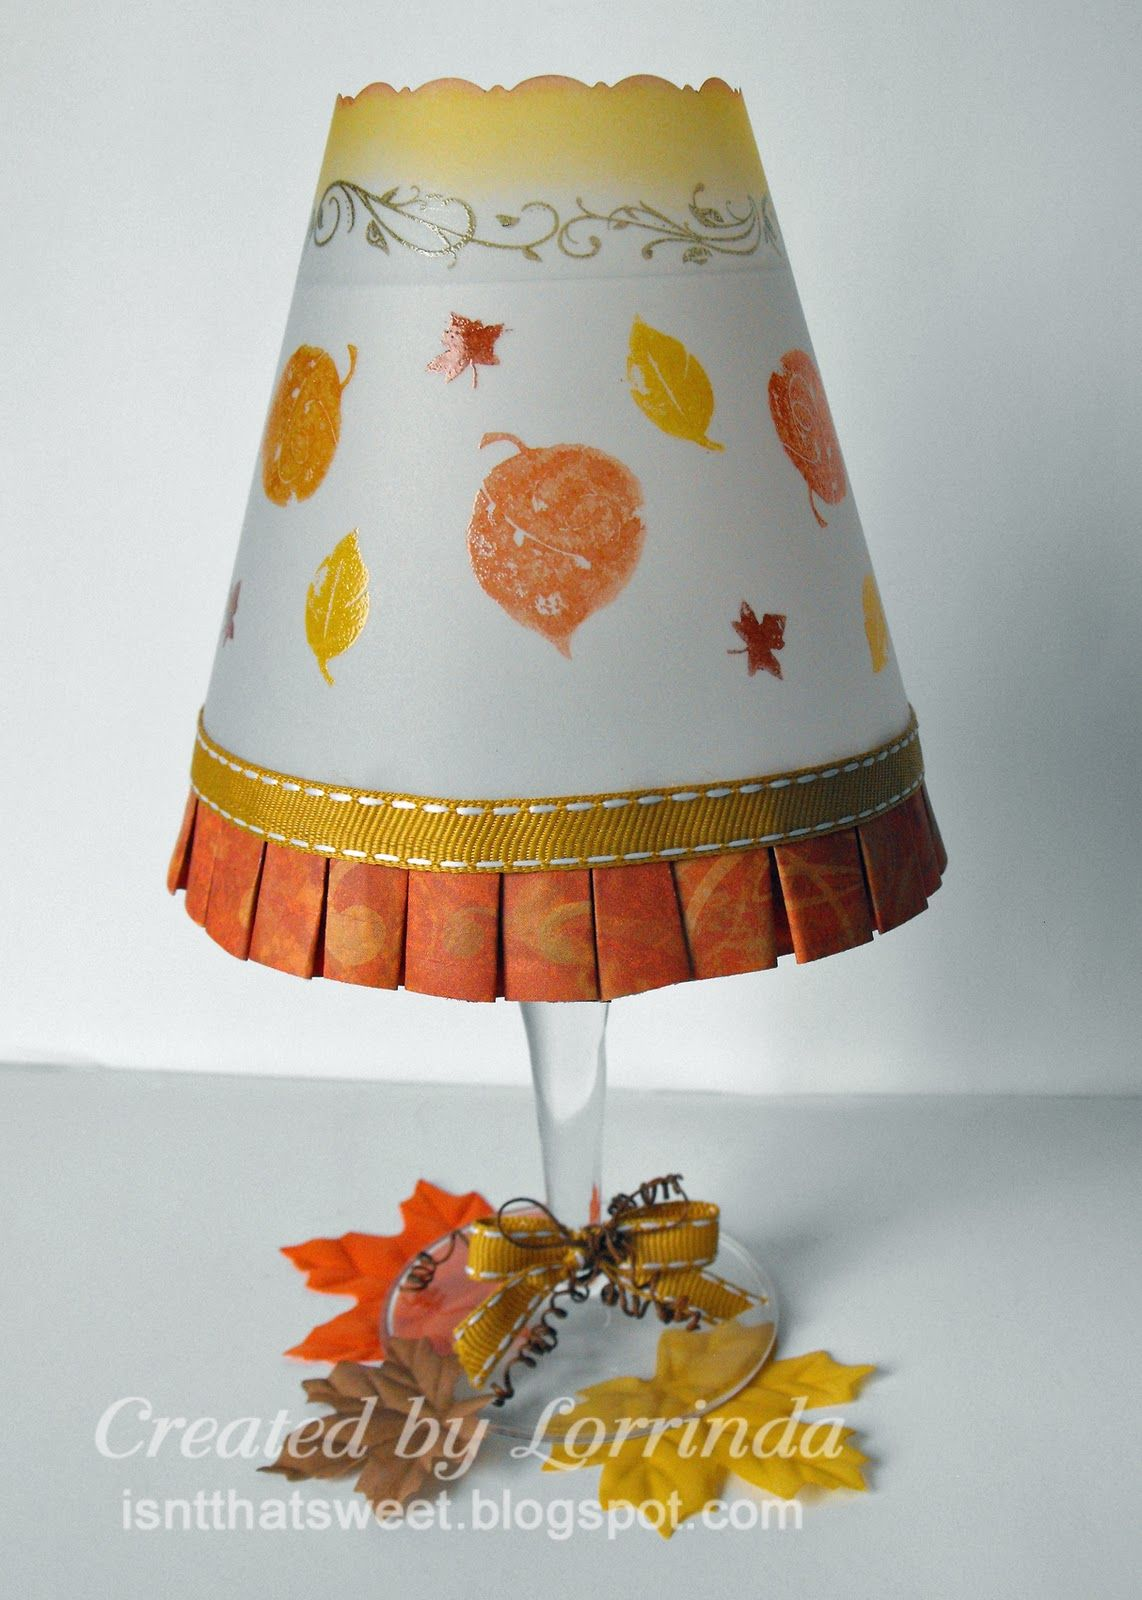 P3 Challenge 11 1 10 Wineglass Candle Lampshade With Images Candle Lampshade Wine Glass Lamp Candle Shades